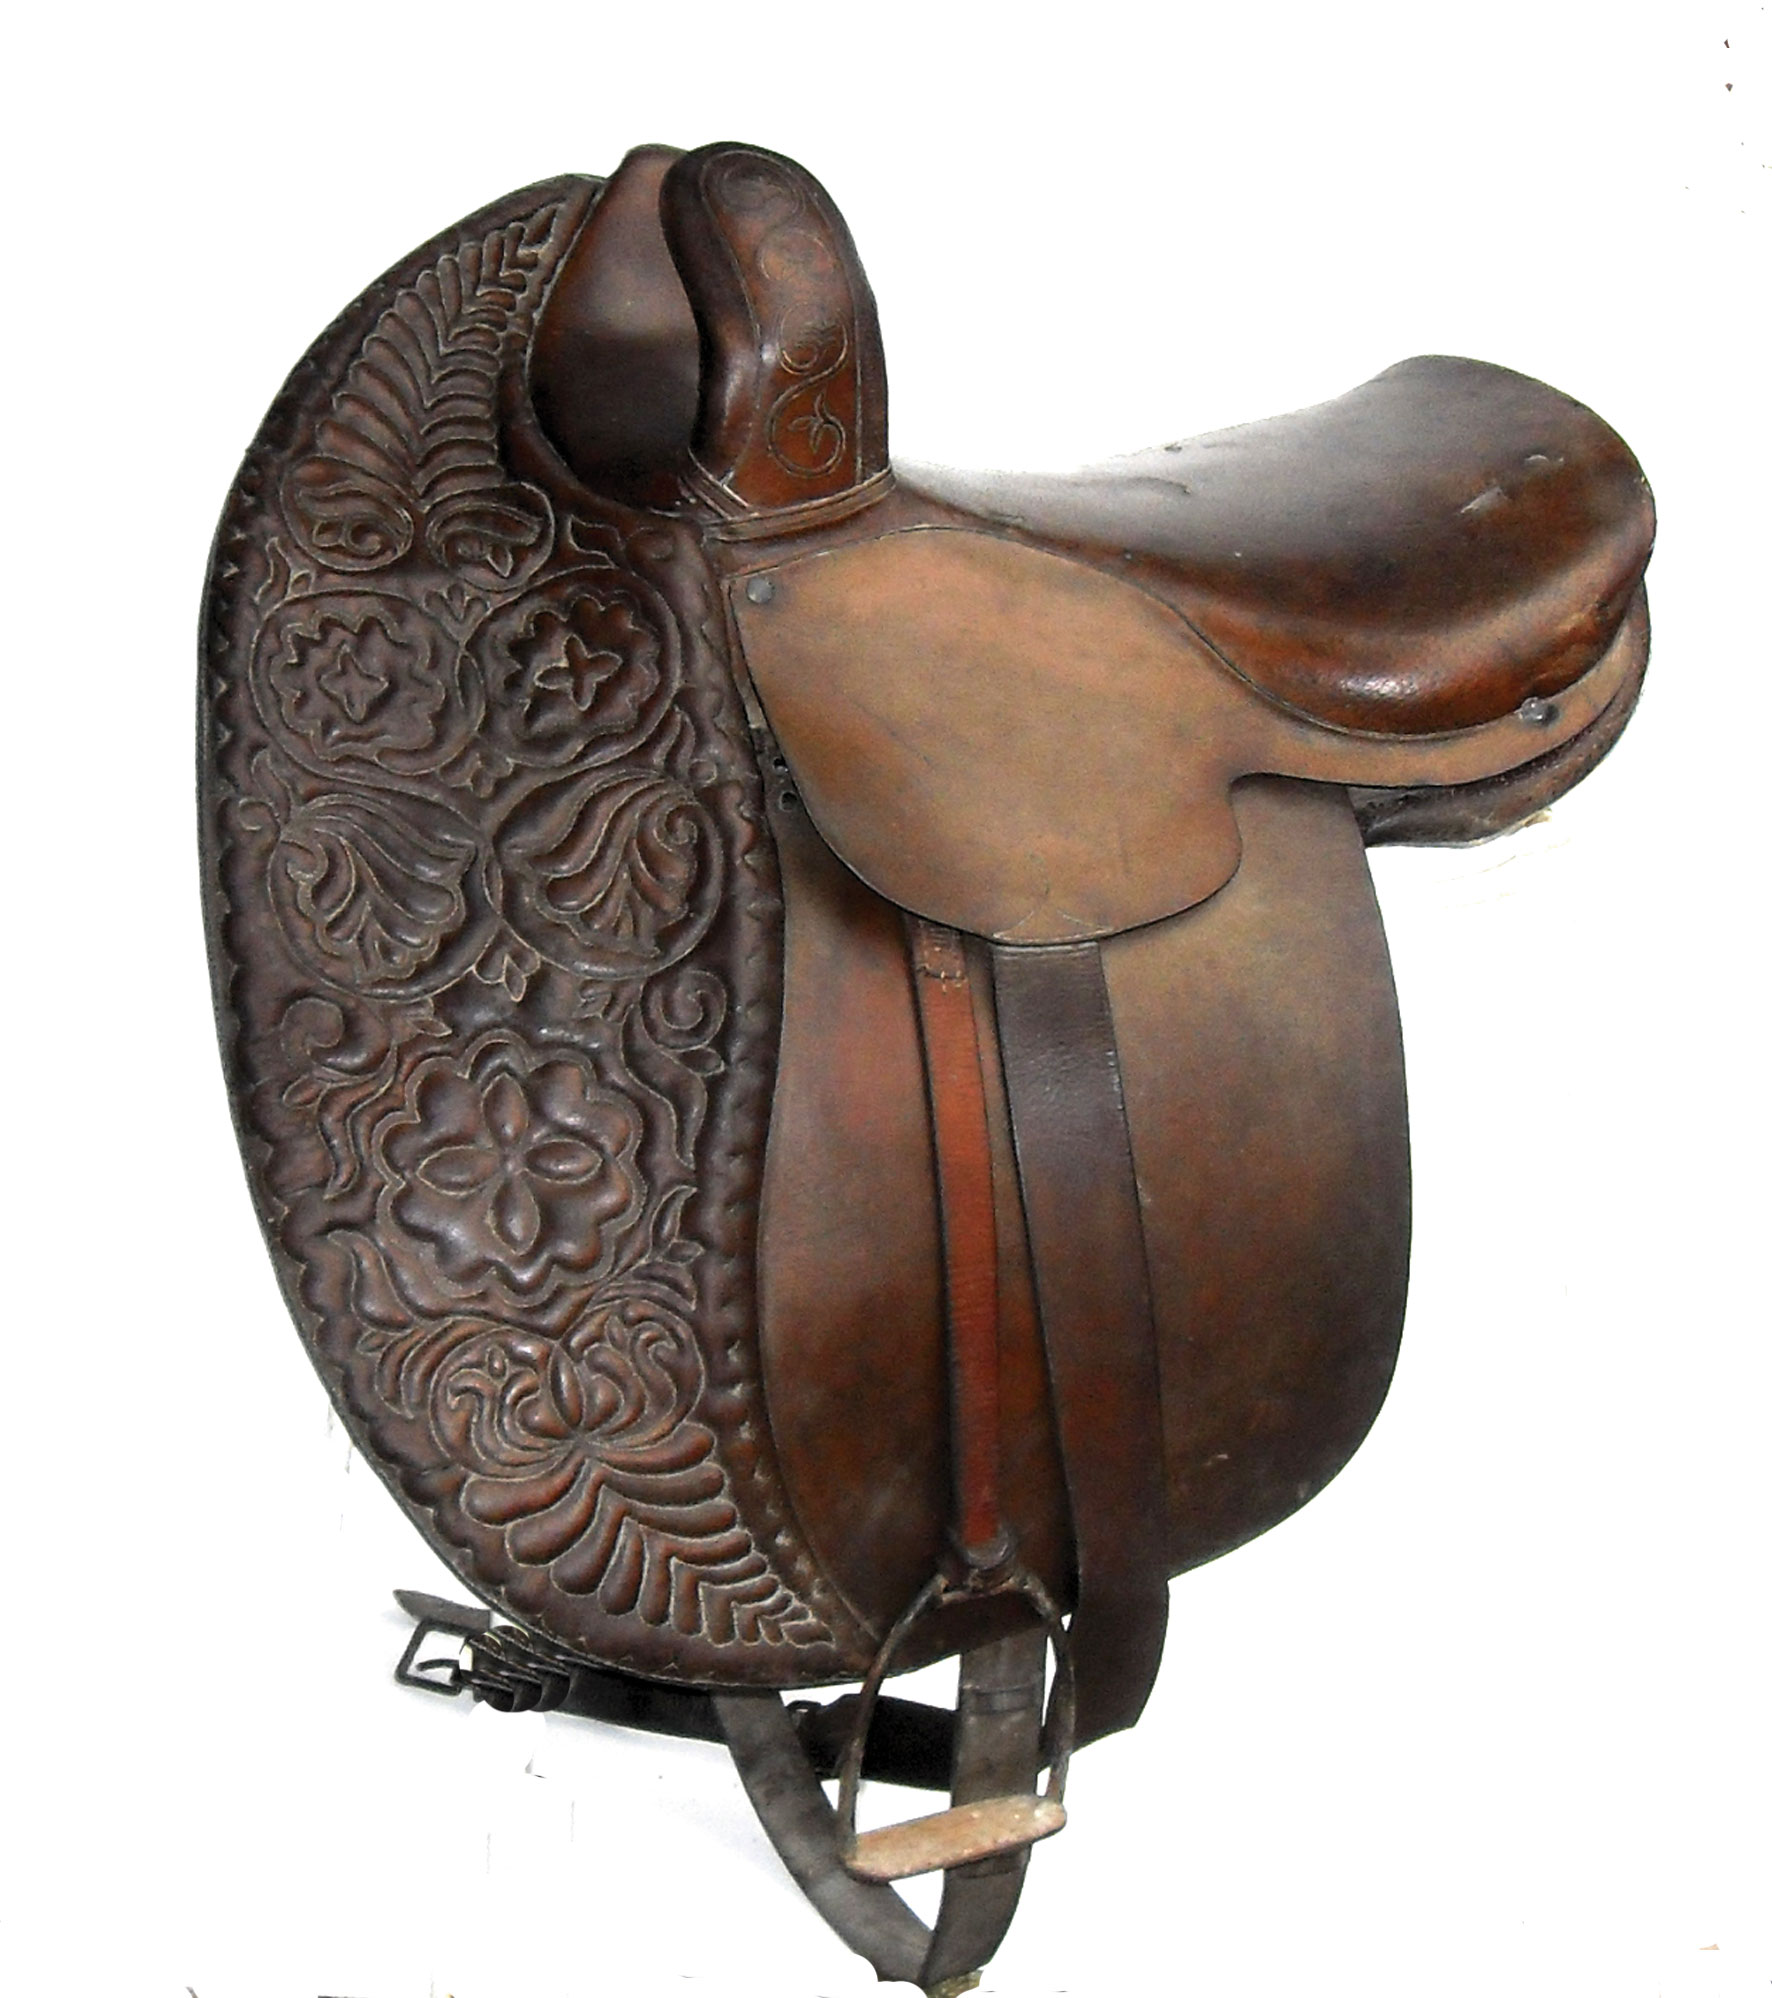 Victorian side saddle